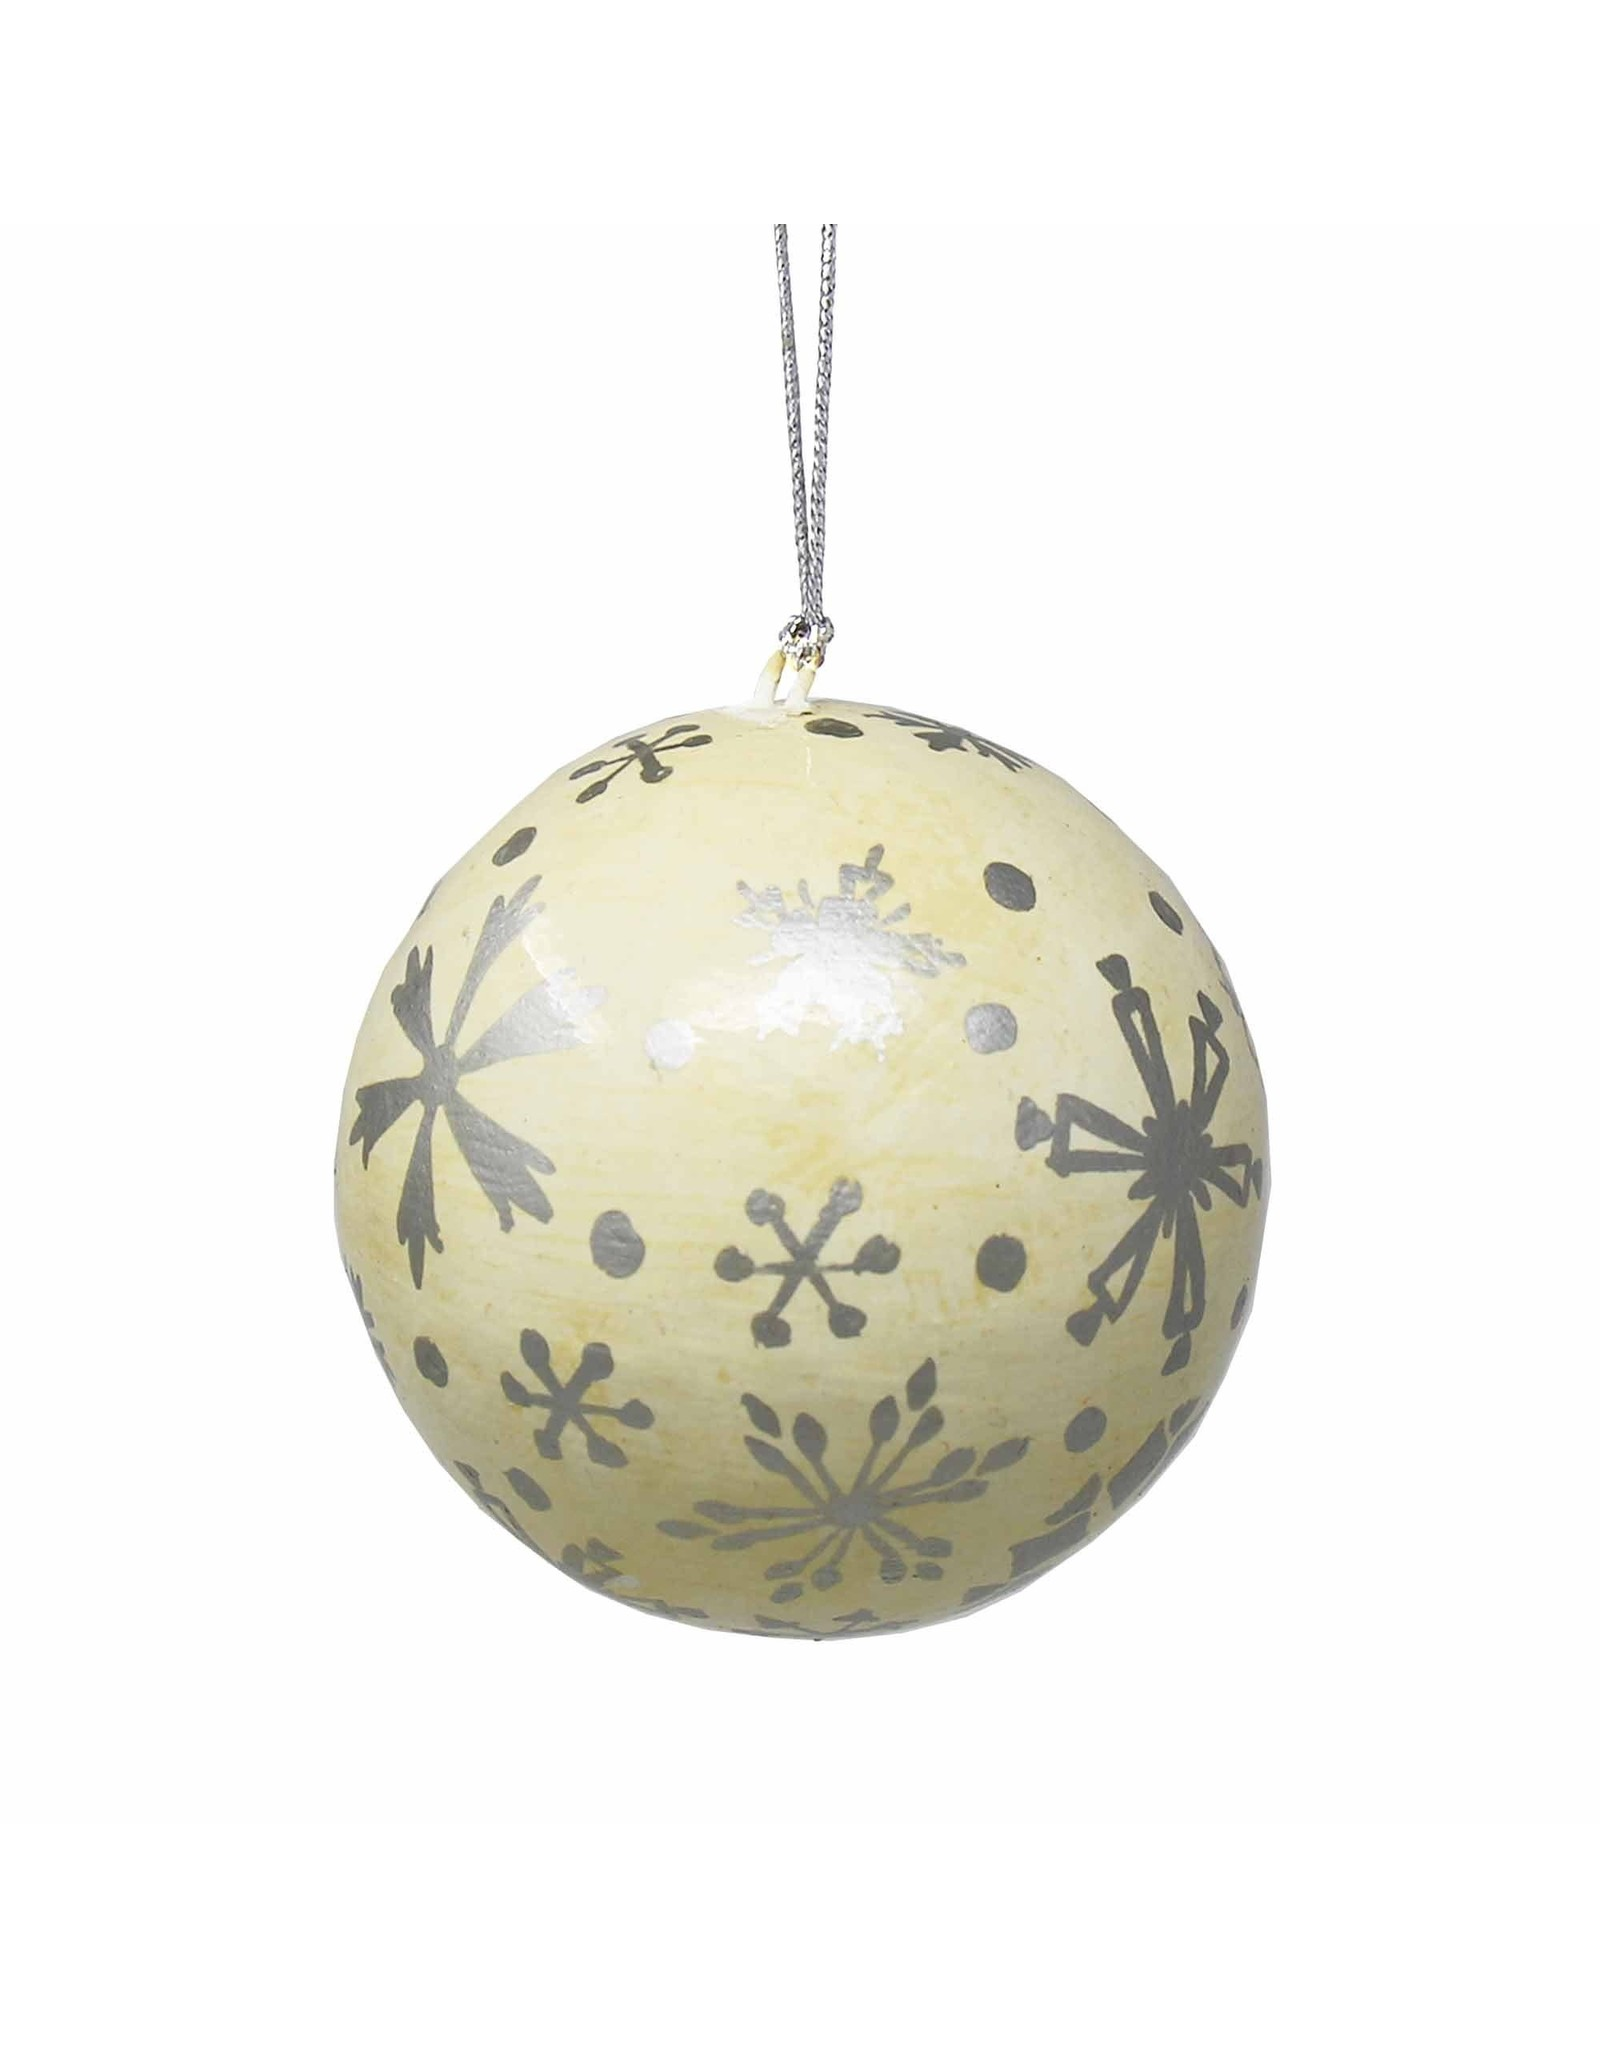 Global Crafts Handpainted Paper Mache Ornament, Silver Snowflake. India